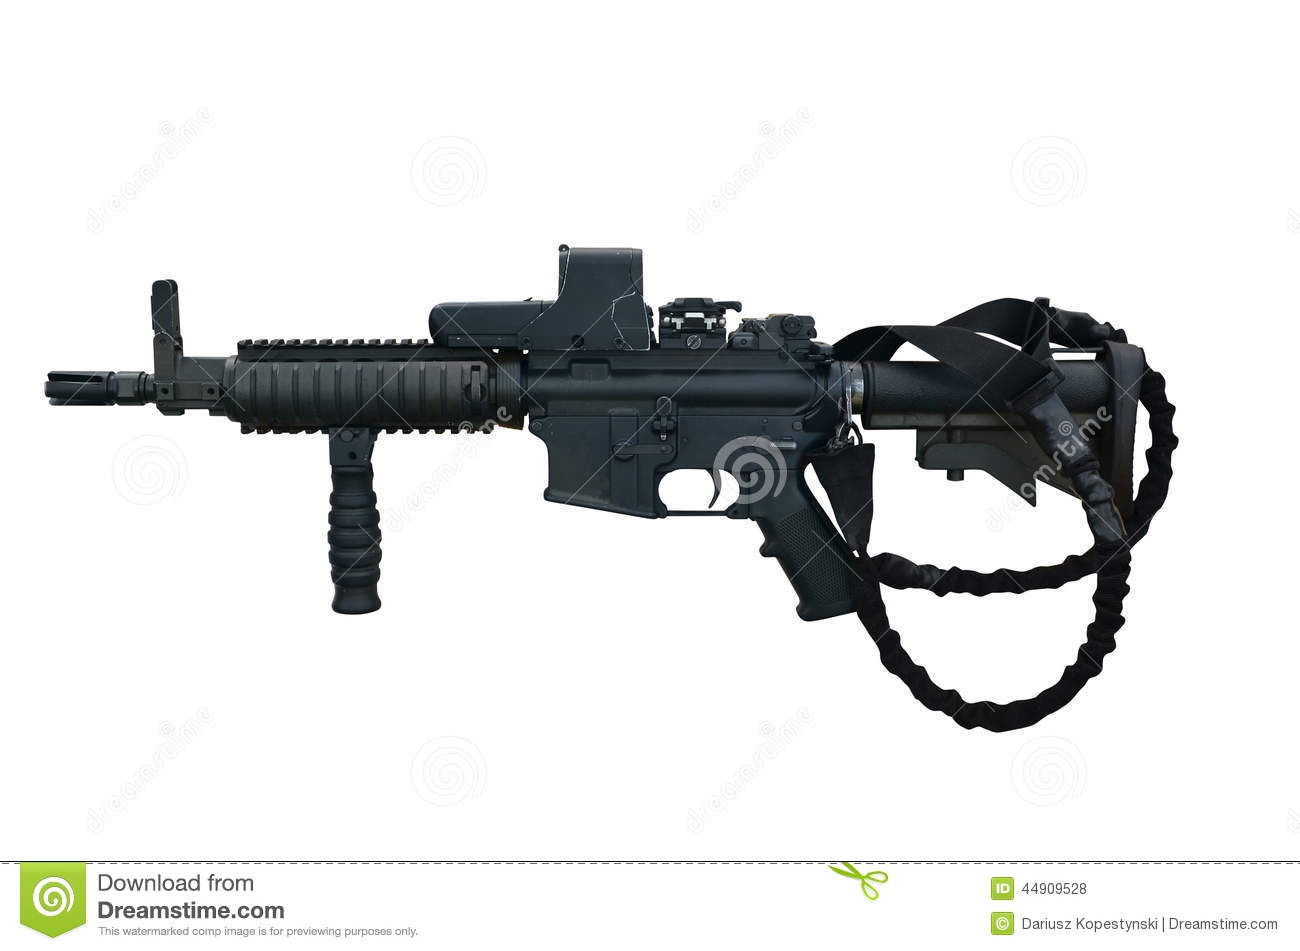 Canadian military machine gun C8 CQB 5,56 mm with holographic weapon ...